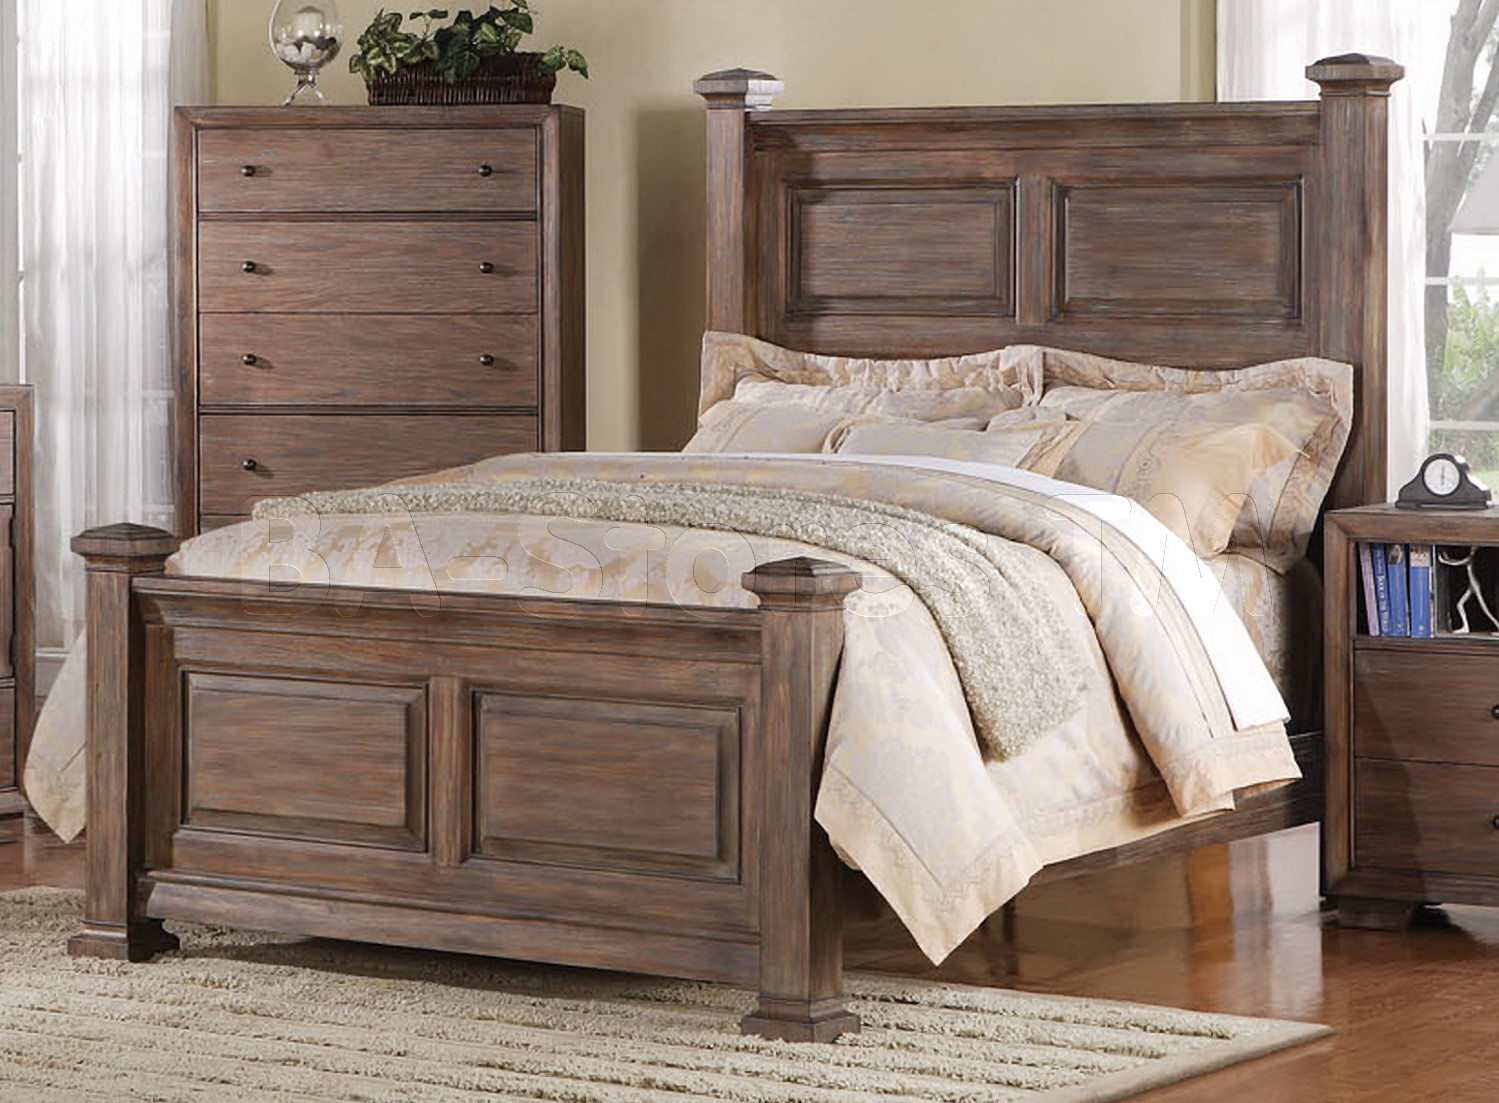 Best ideas about Shabby Chic Bedroom Sets . Save or Pin Exterior furniture distressed bedroom furniture shabby Now.